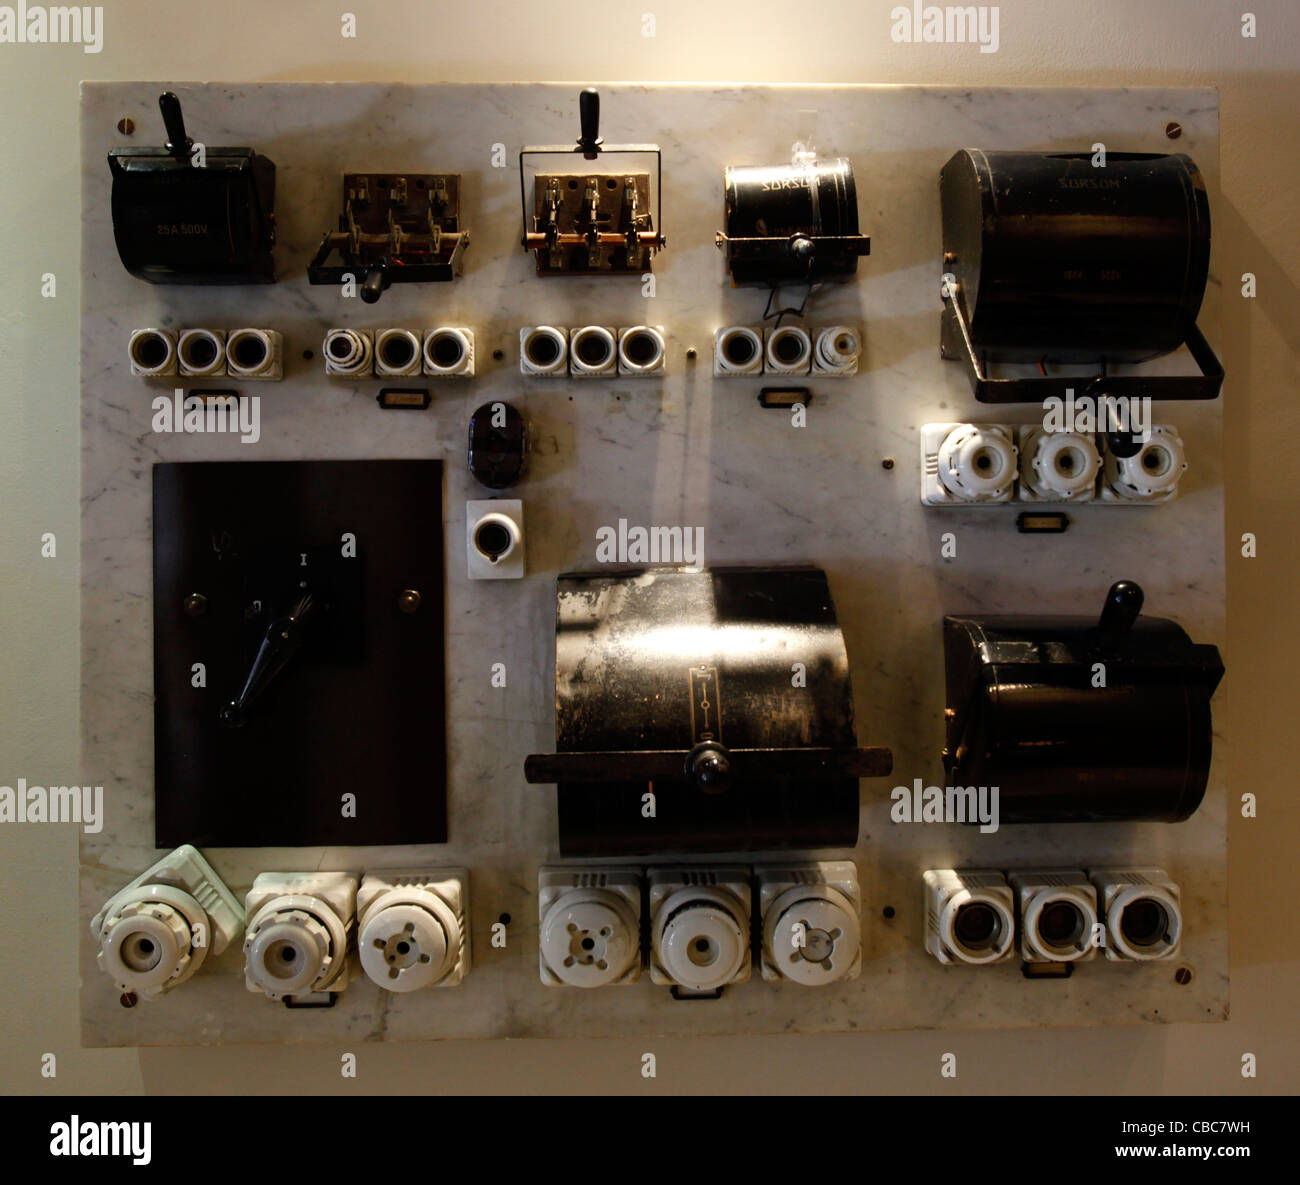 an old electric fuse box switchboard with ceramic fuses CBC7WH early 1900s fuse box 2004 ford fuse box diagram \u2022 wiring diagrams how to change fuses in fuse box at arjmand.co